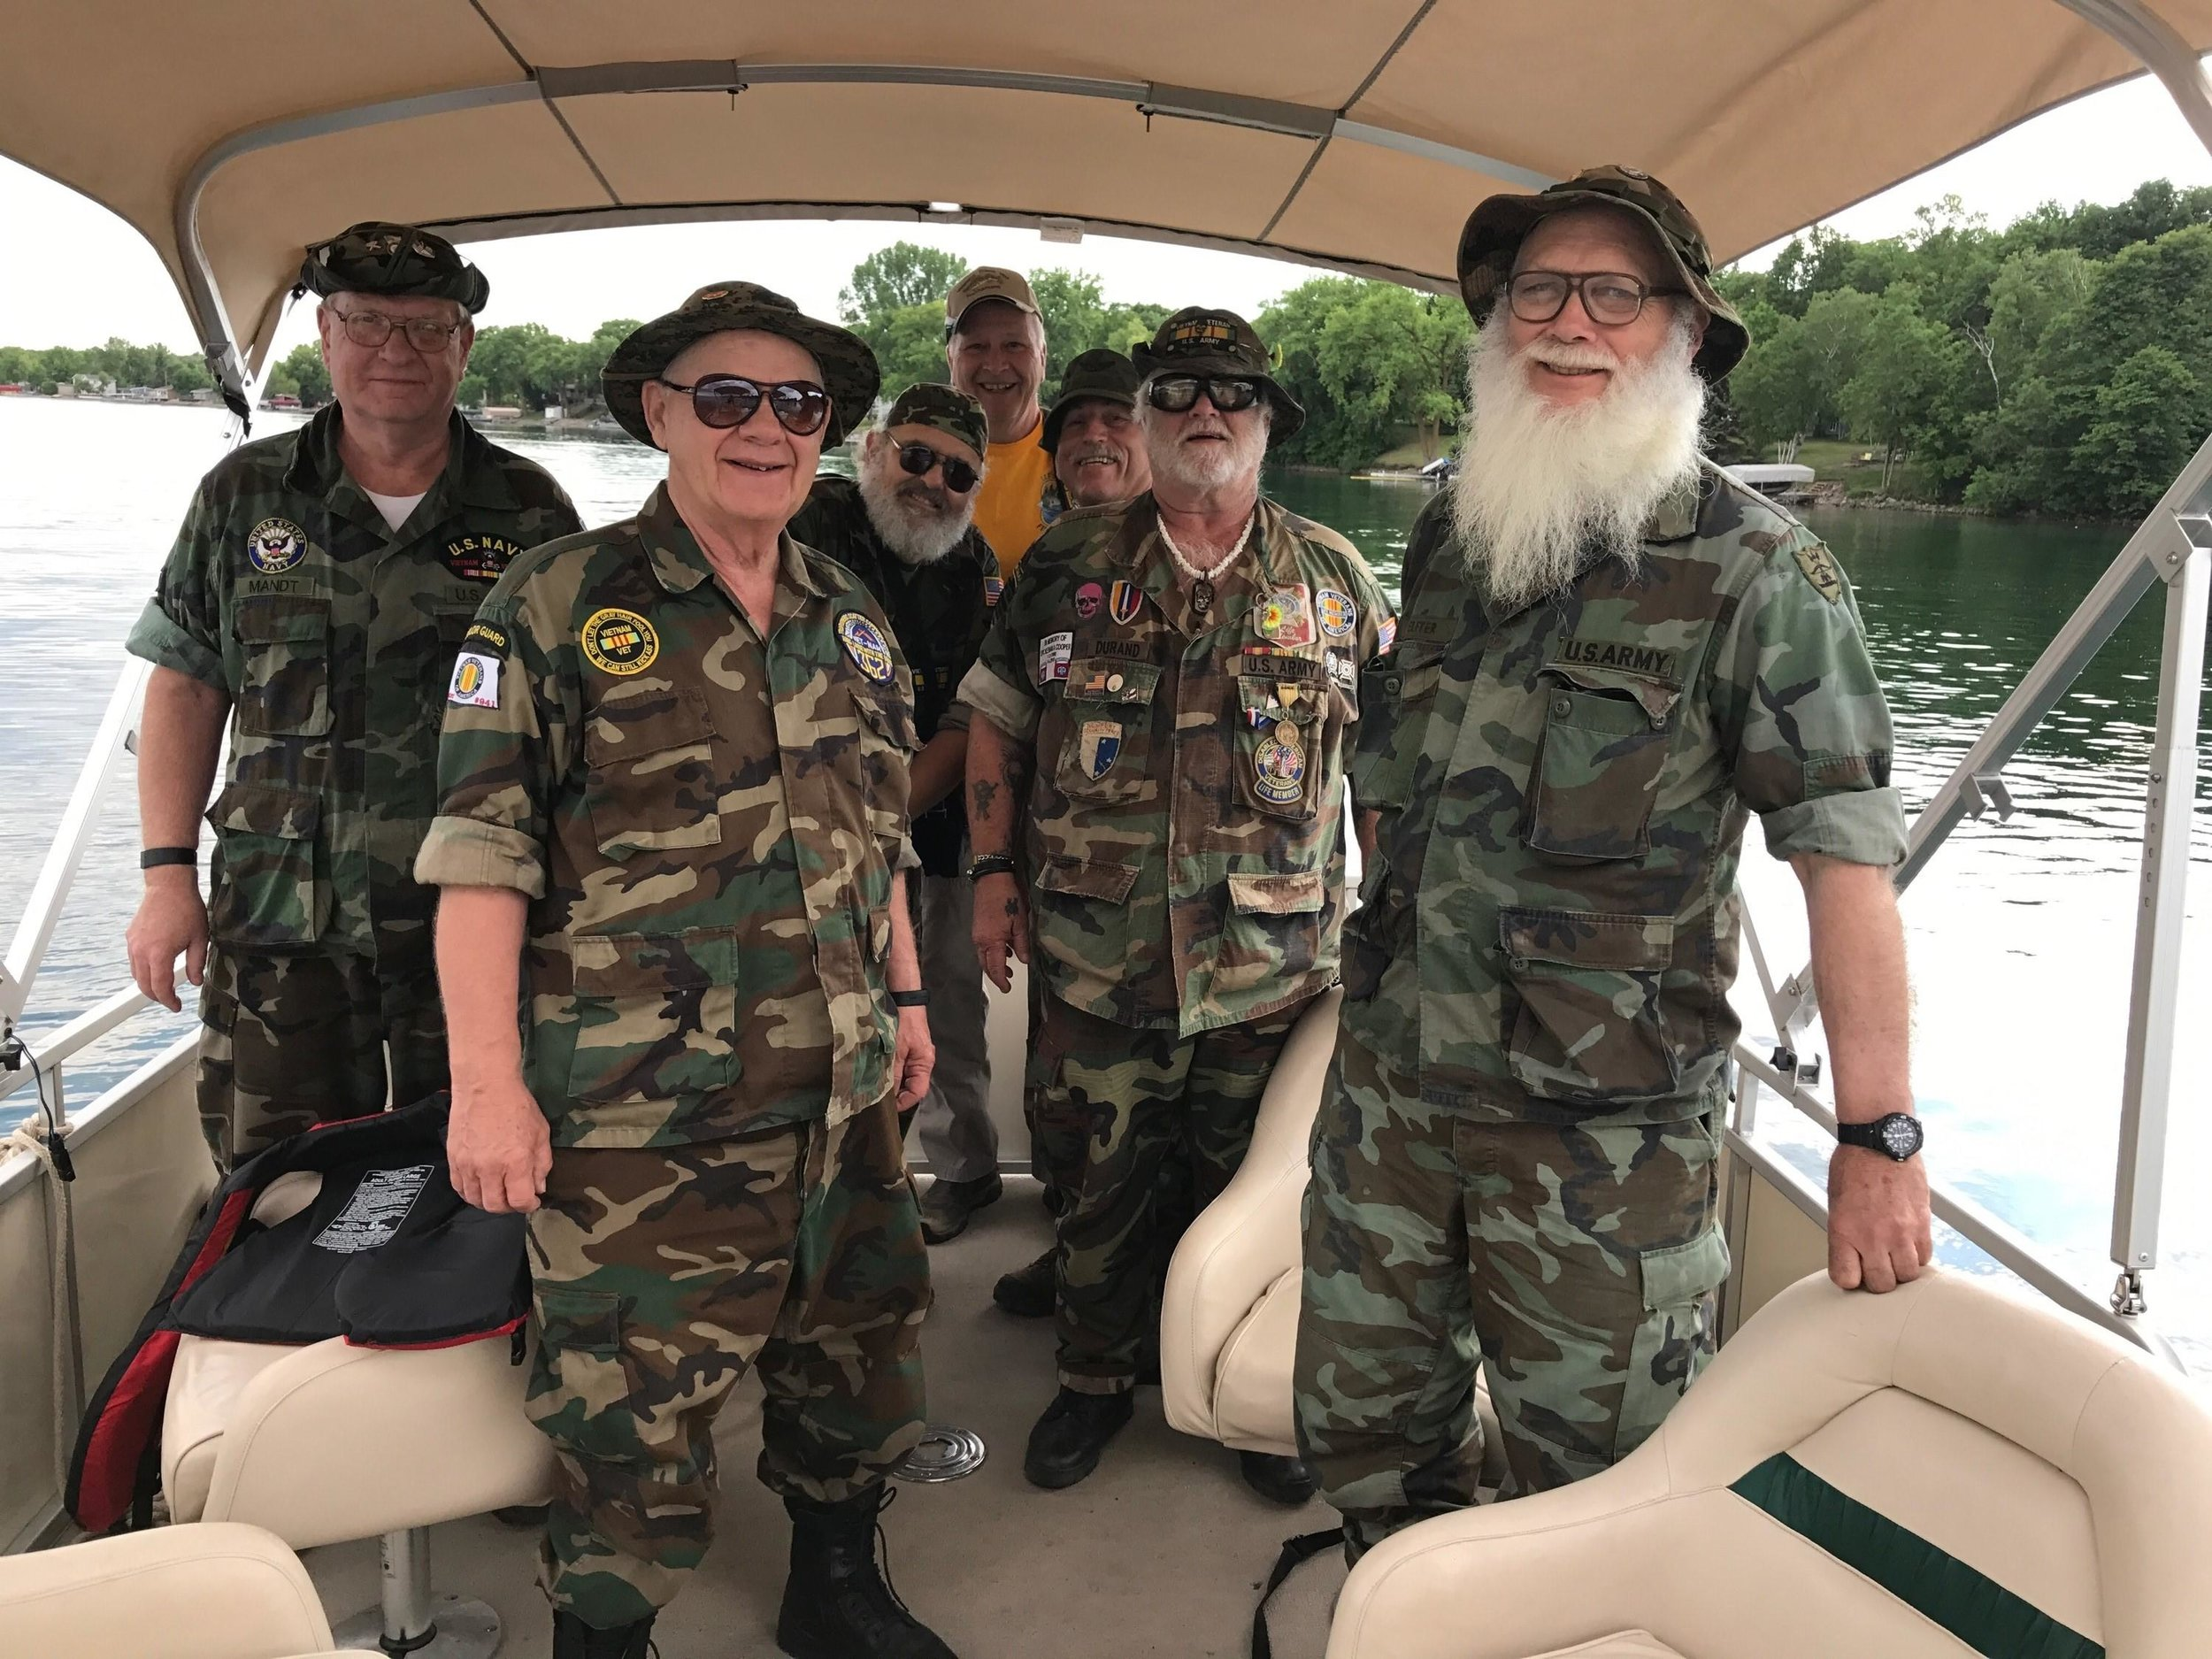 This group of area veterans came dressed for the occasion during a 2017 trip they scheduled through the Detroit Lakes chapter of Let's Go Fishing. (Submitted photo)